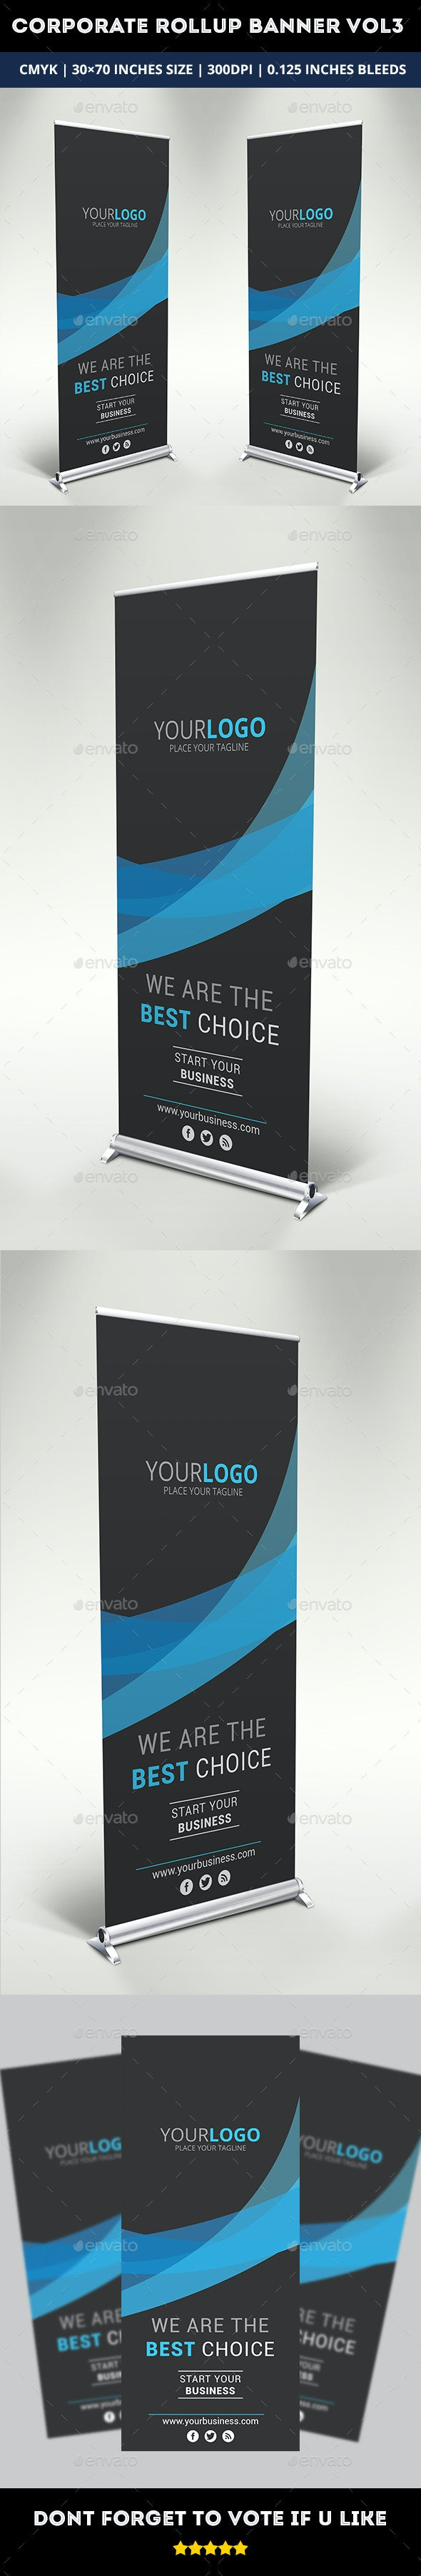 Corporate Rollup Banner Vol 3 - Signage Print Templates